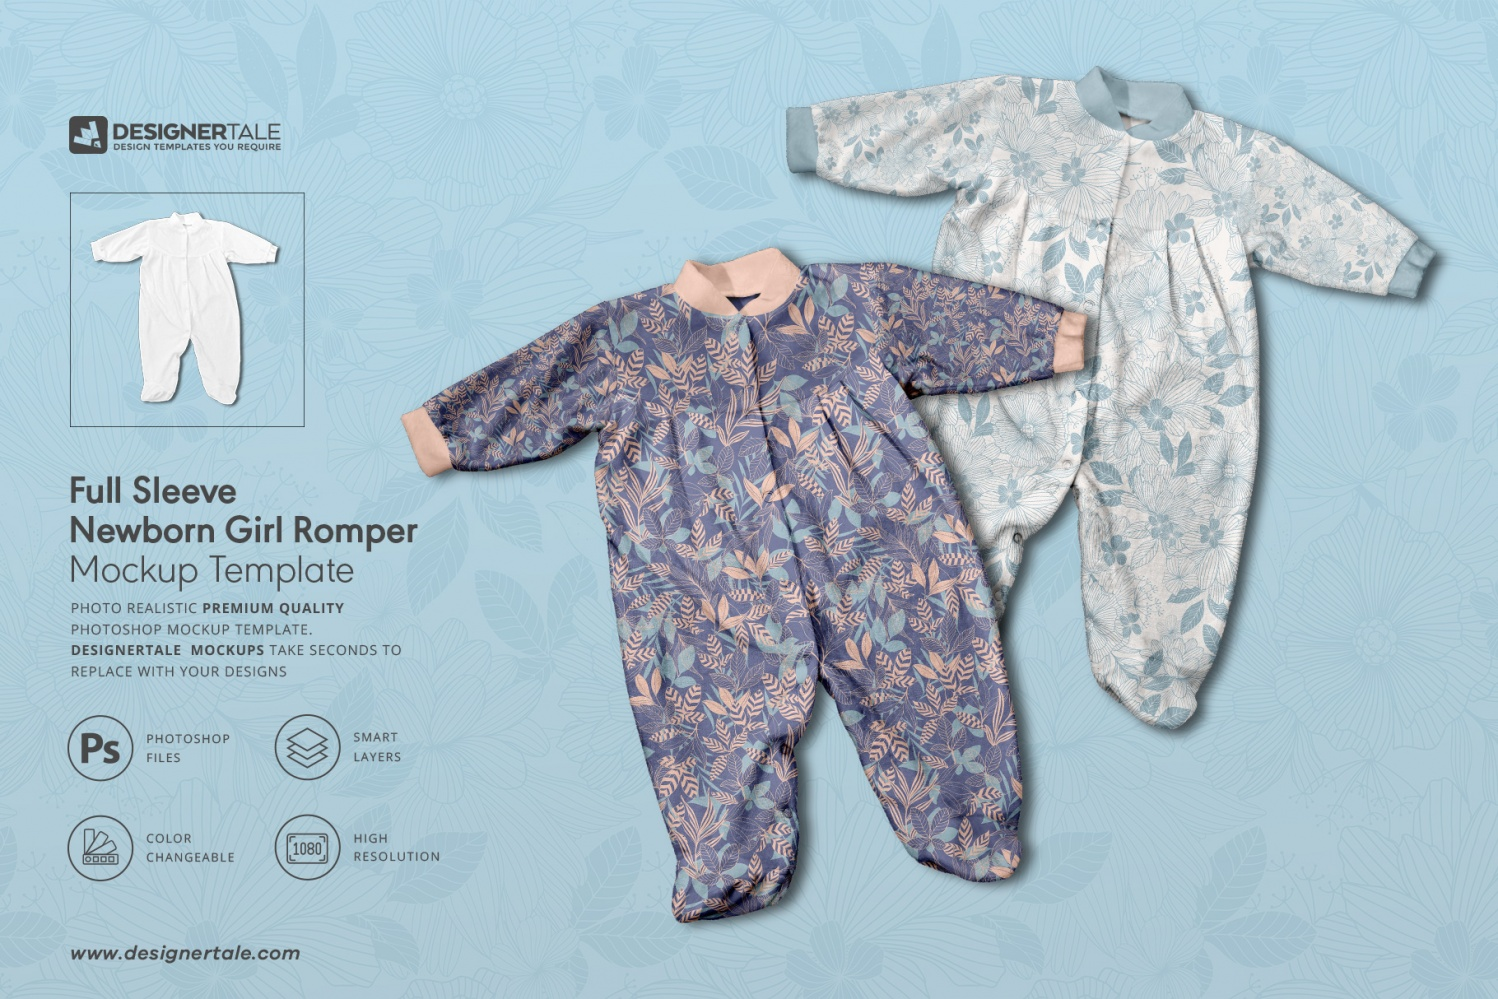 full sleeve newborn girl romper mockup